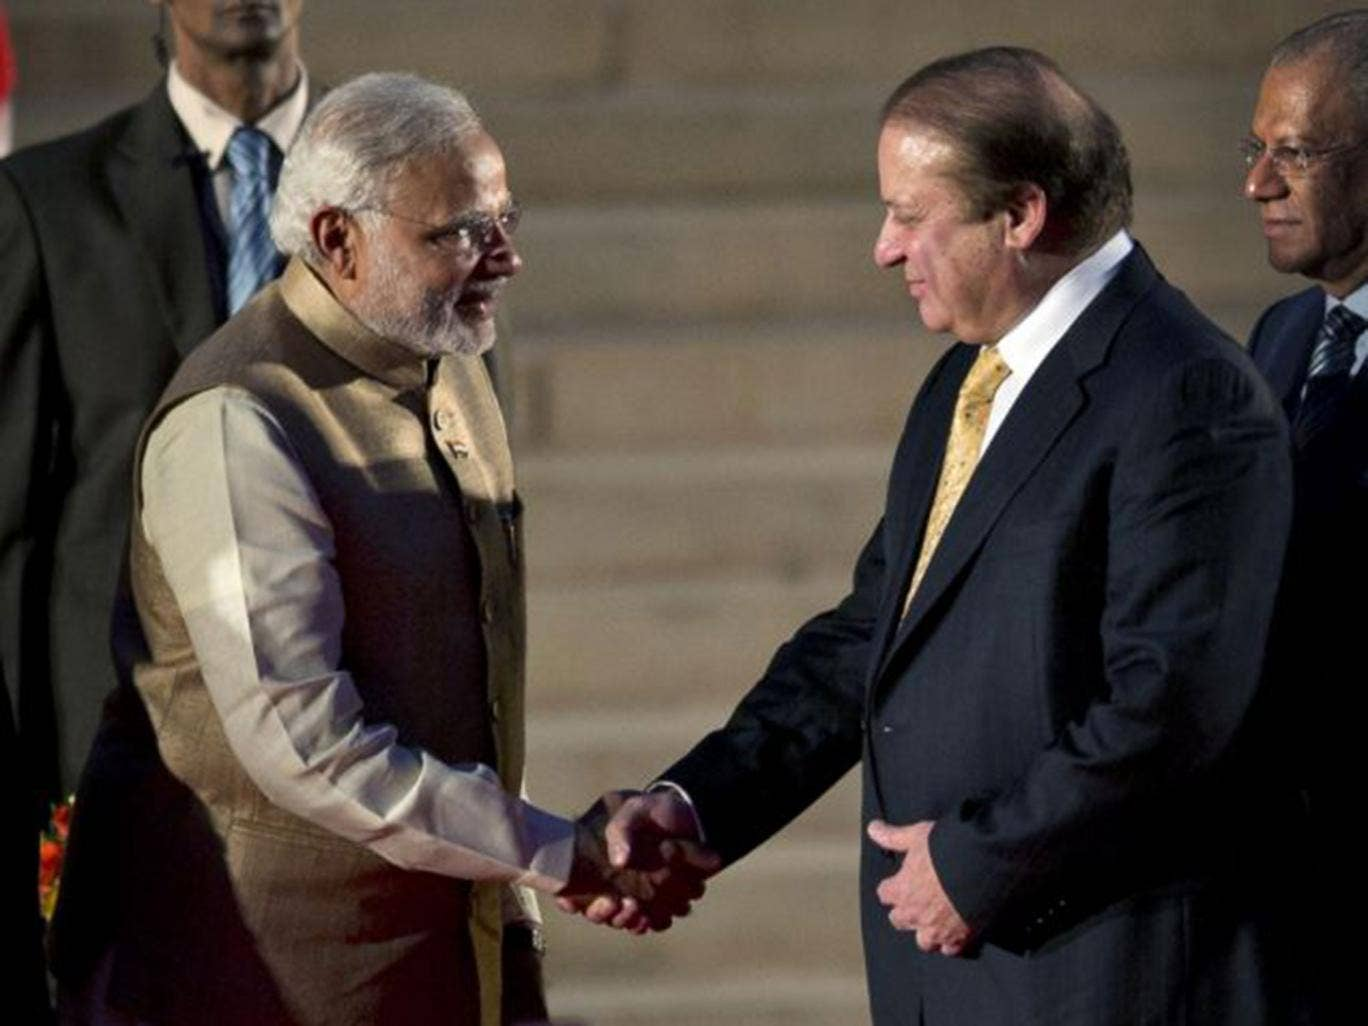 Modi (left) took the oath of office as India's new prime minister at the presidential palace, a moment made more historic by the presence of the leader of Pakistan, Nawaz Sharif